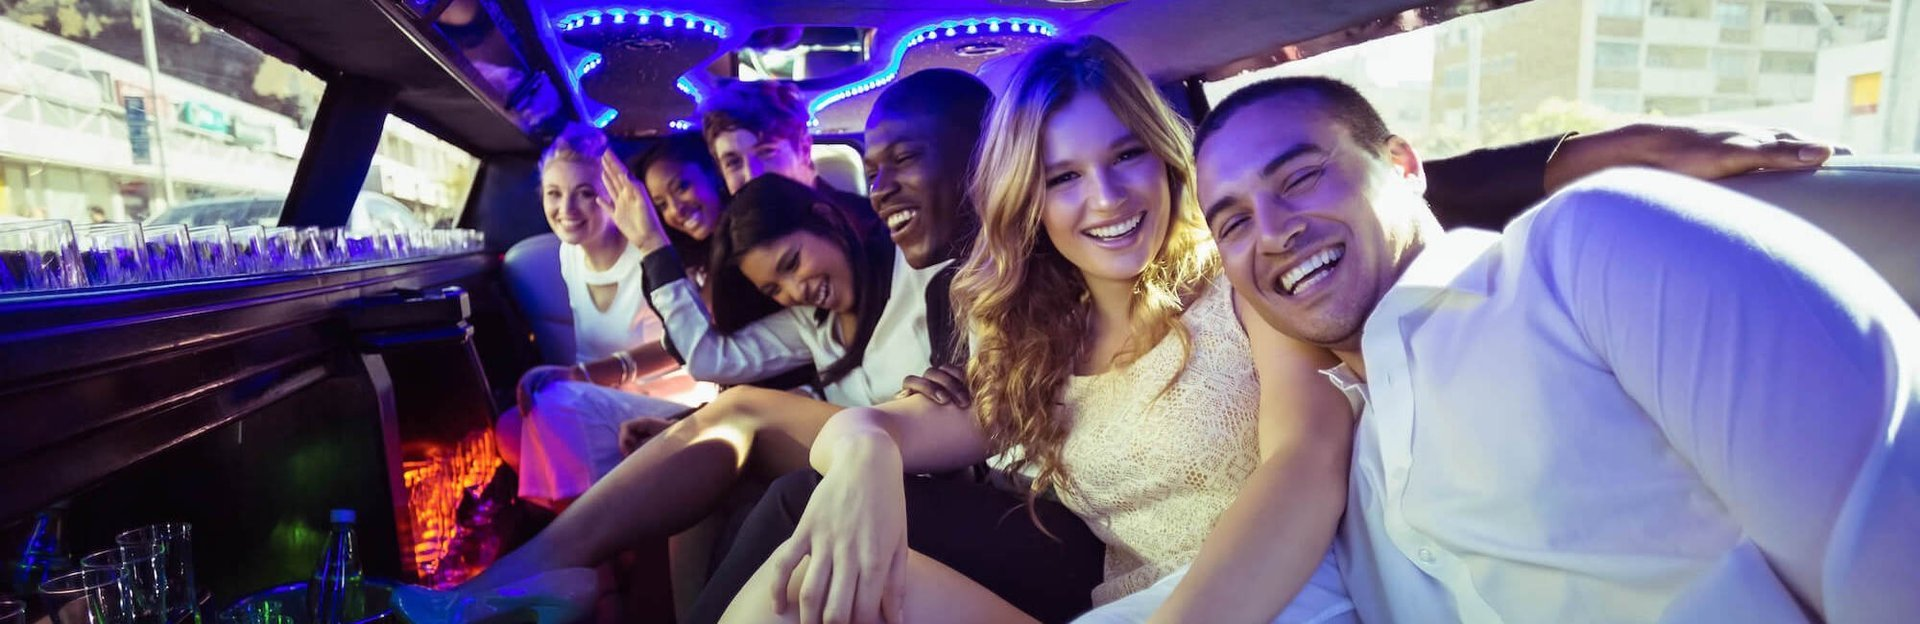 limo service in San Diego testimonials